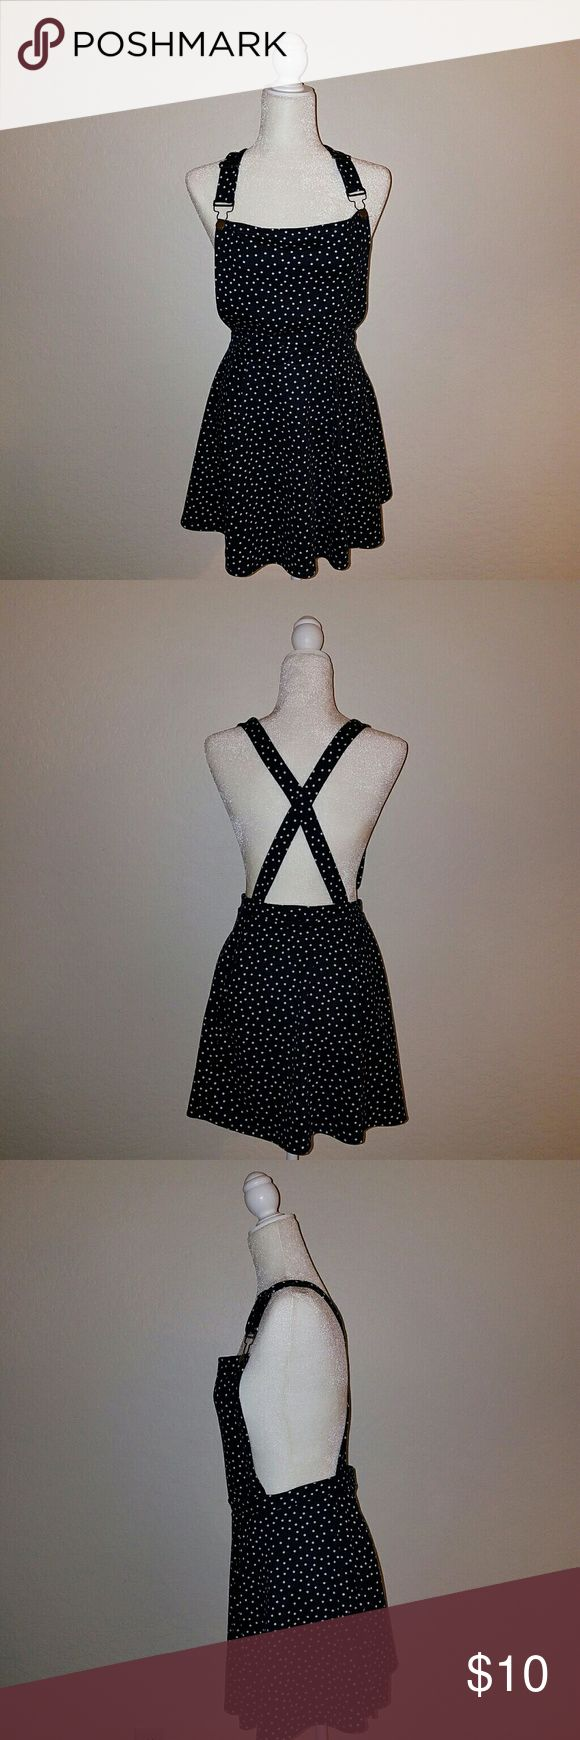 Cotton On Polka dot overall dress Black with white polka dots Overalls Criss cross back Cotton On Dresses